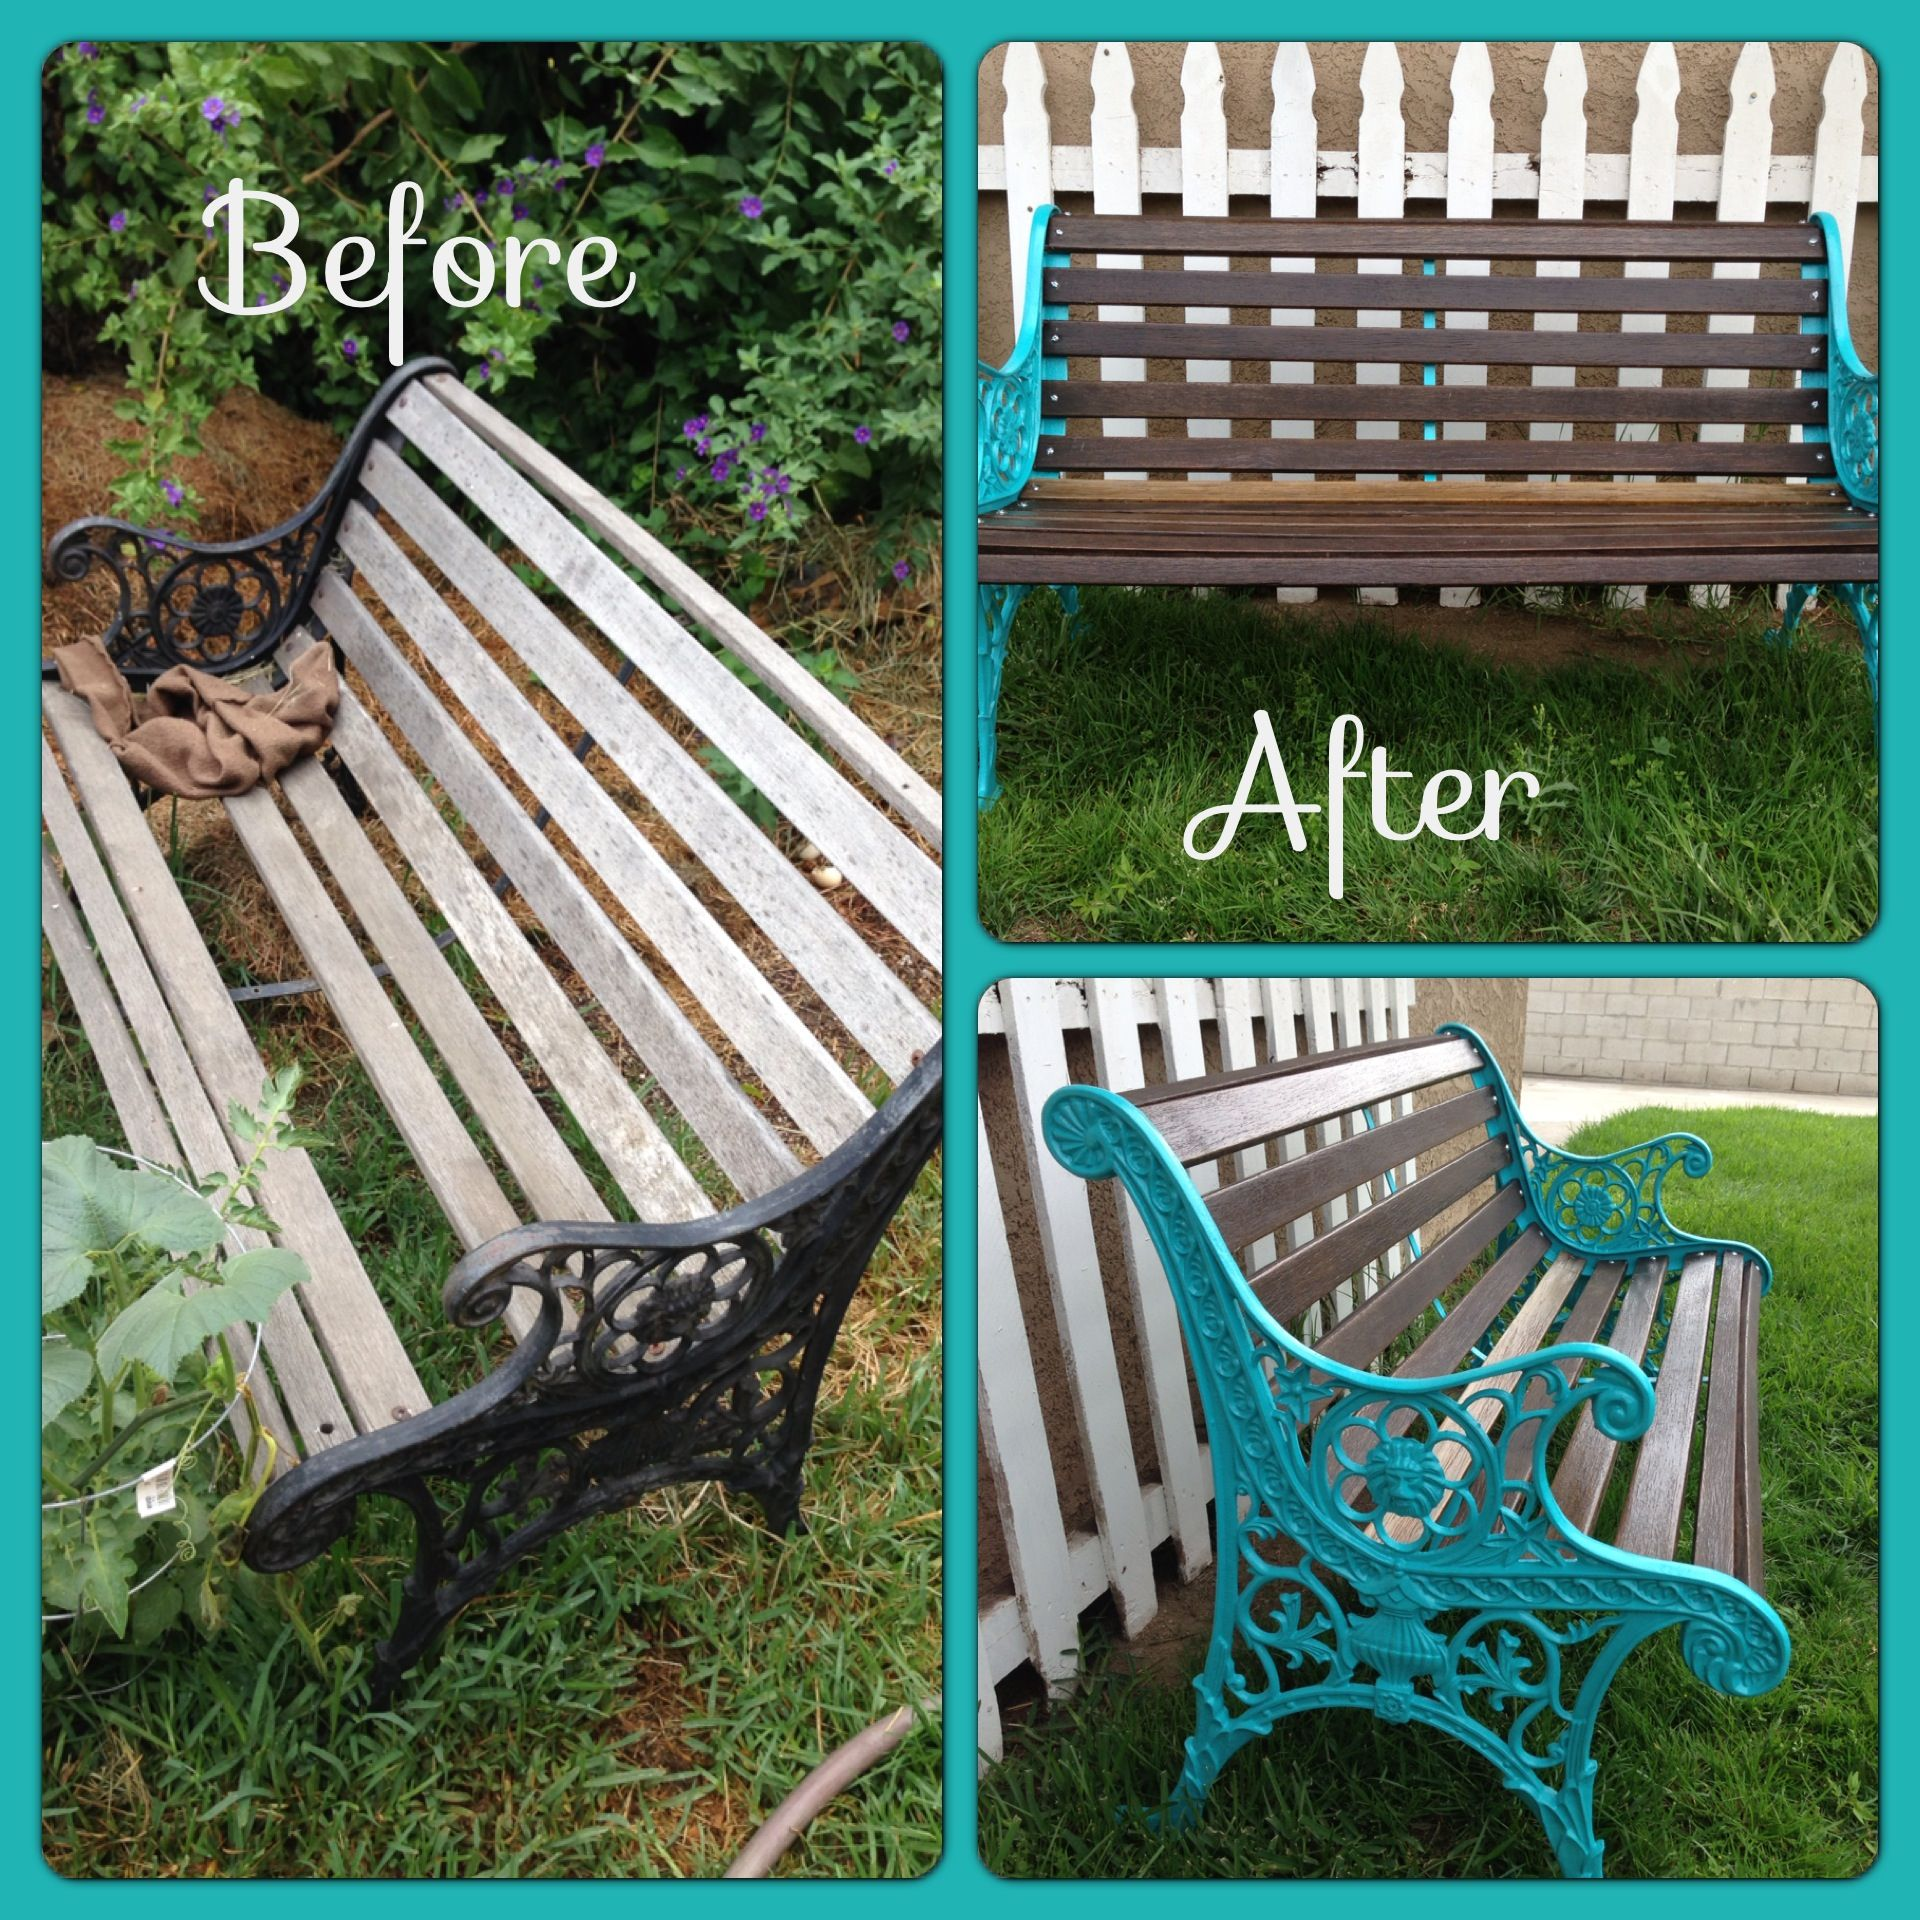 Ordinary Park Bench Ideas Part - 2: Bench Project! Rustoleum, New Hardware, Lacquer. Turned An Old Park Bench  Into